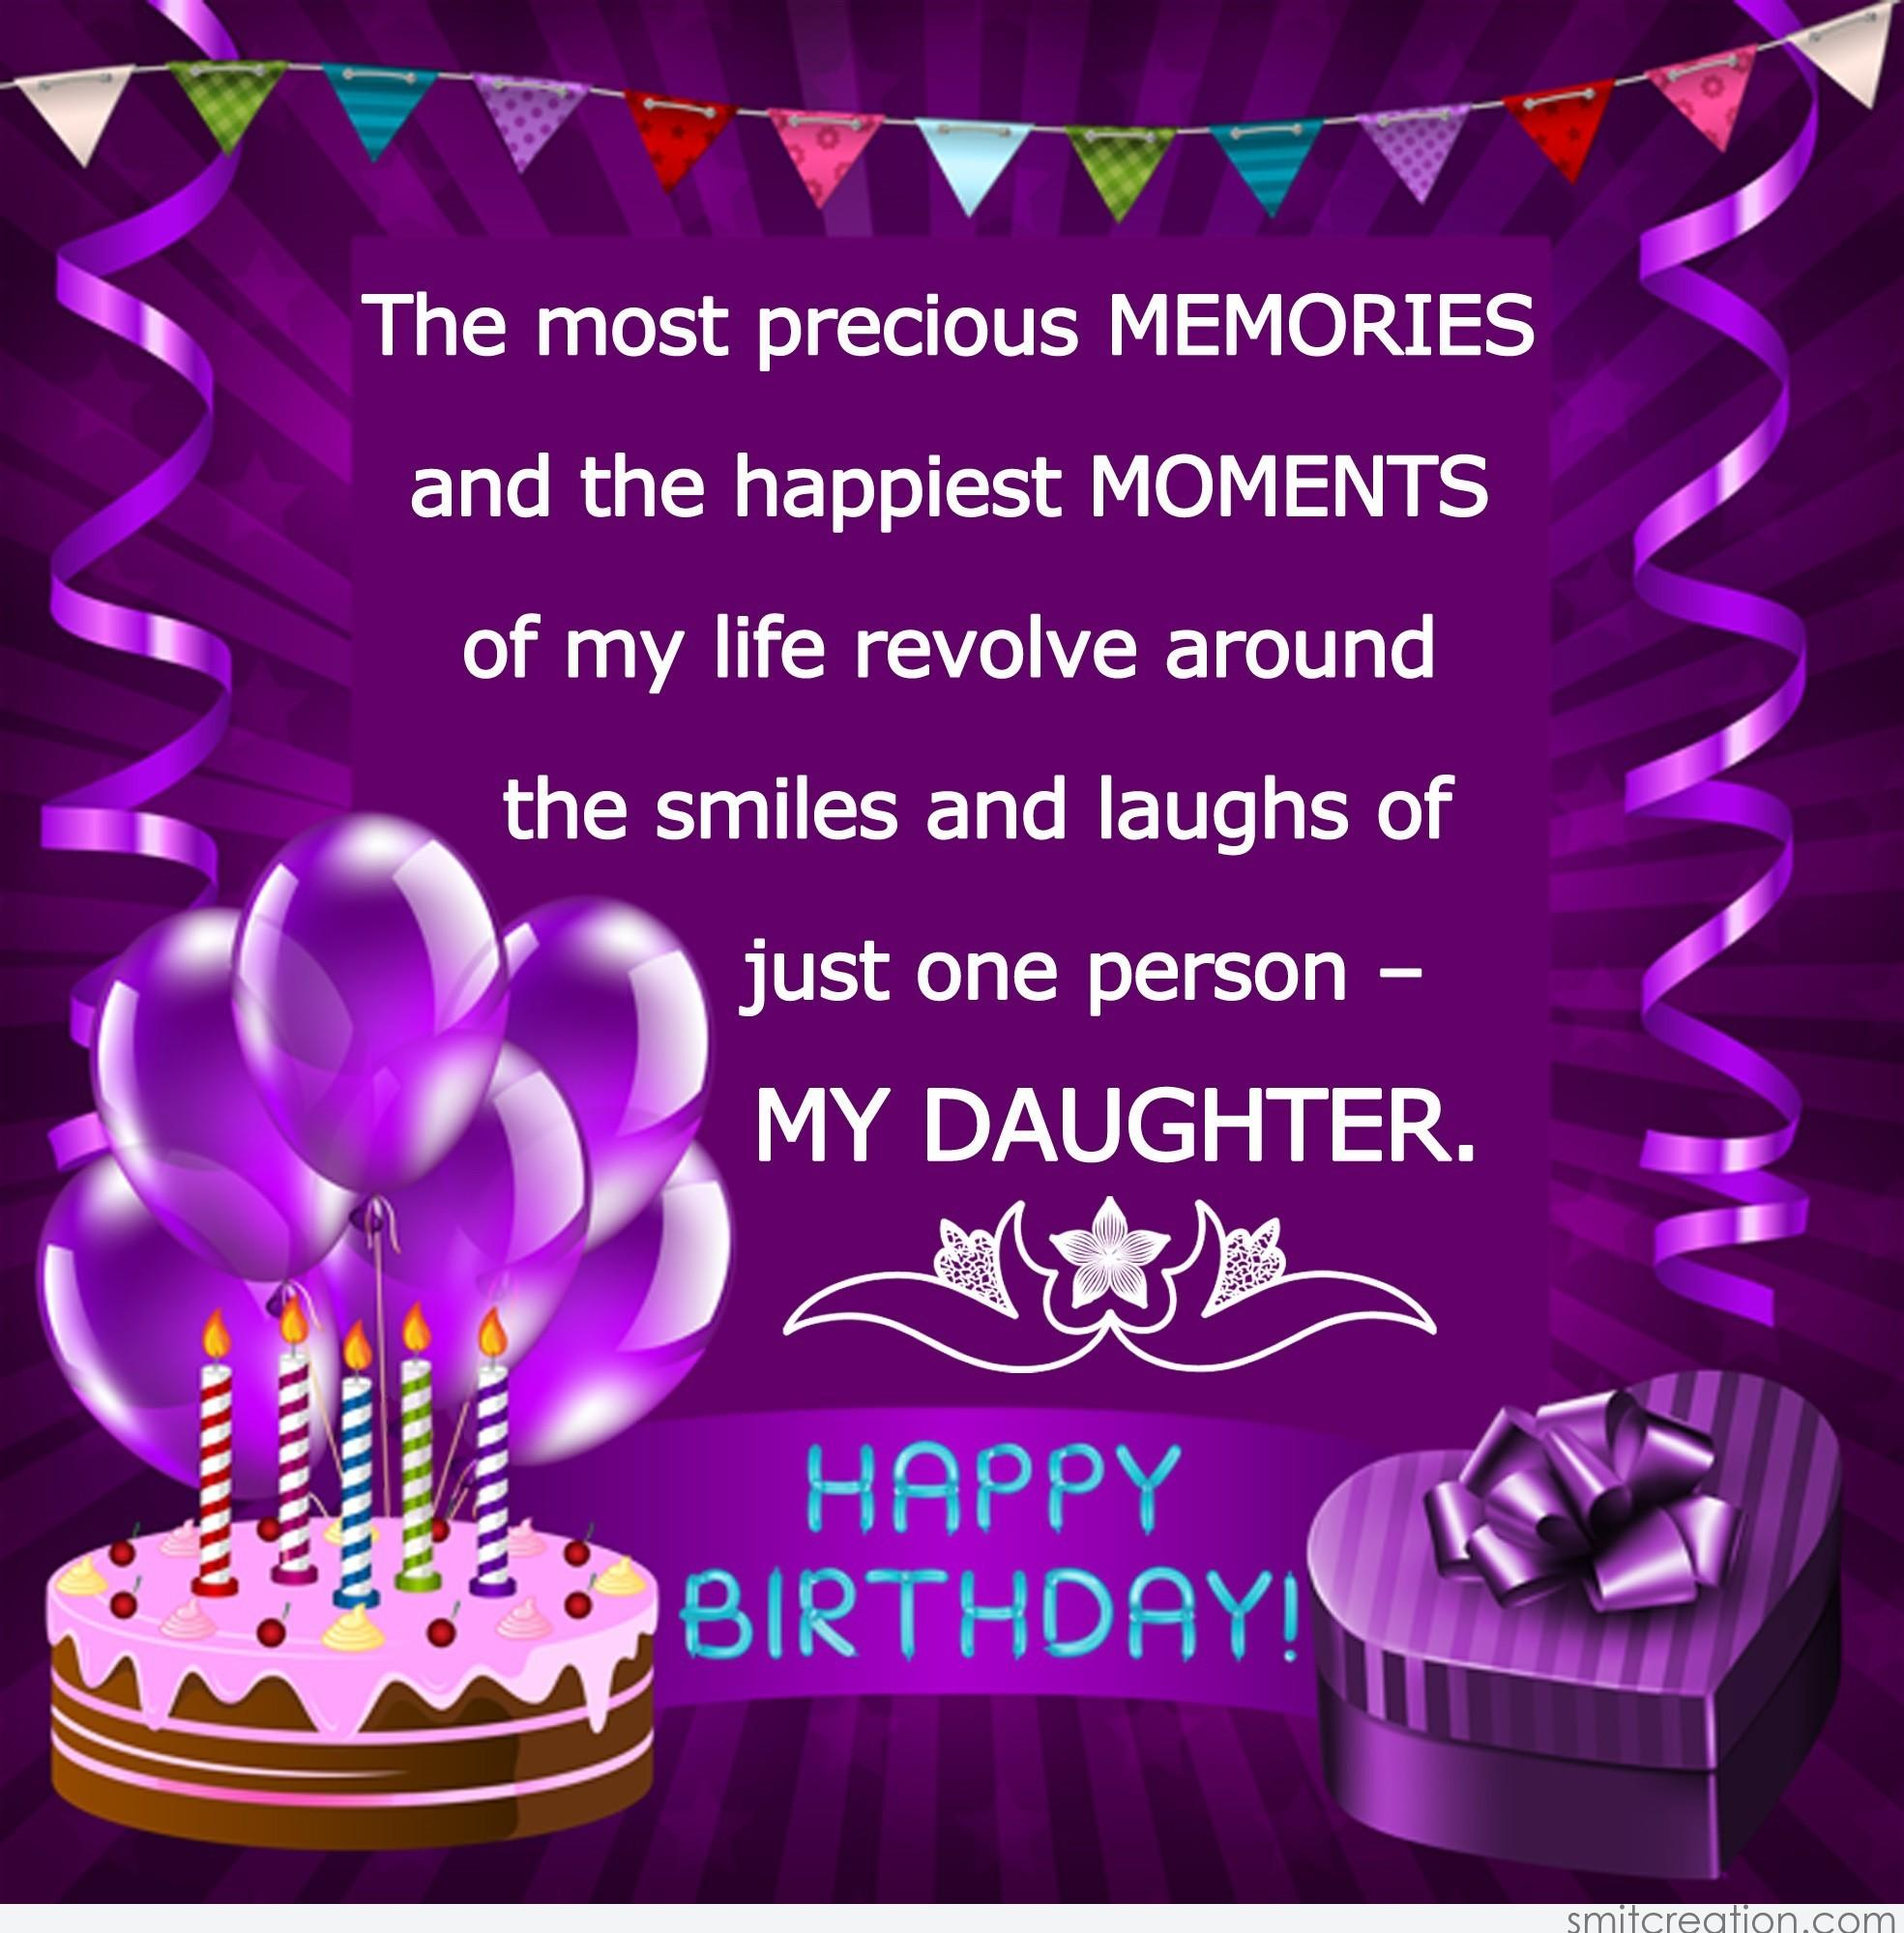 Birthday Wishes For Daughter Pictures And Graphics Smitcreation